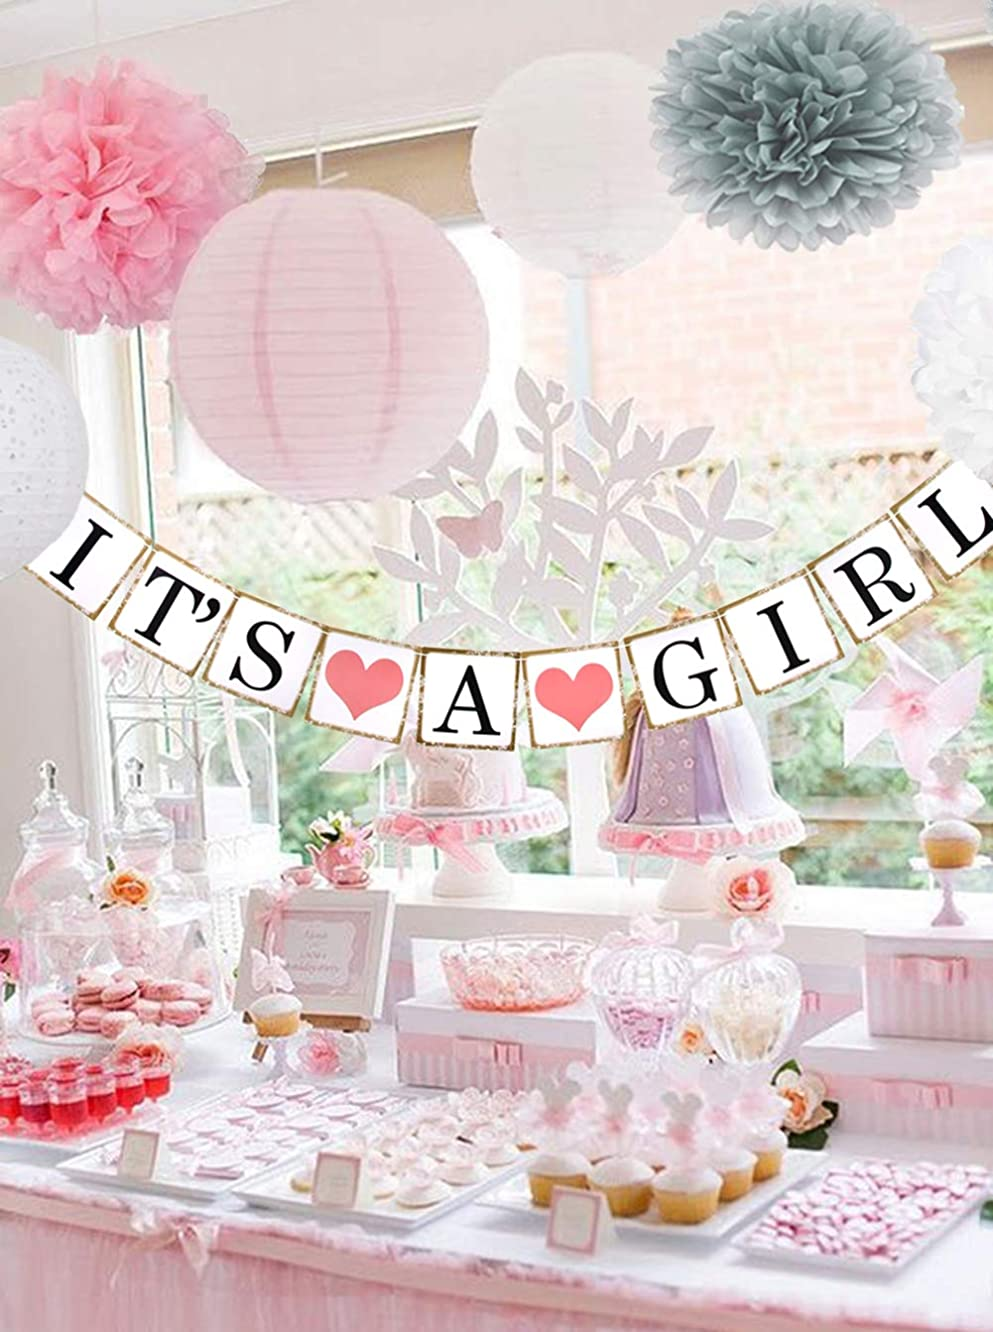 Beau & Miel Baby Shower Decorations for Girl, decoracion para Baby Shower ni?a, babyshower Package, Decoration Party kit with Banner Decor, Pink White Gray Packages Paper pom poms for Babies